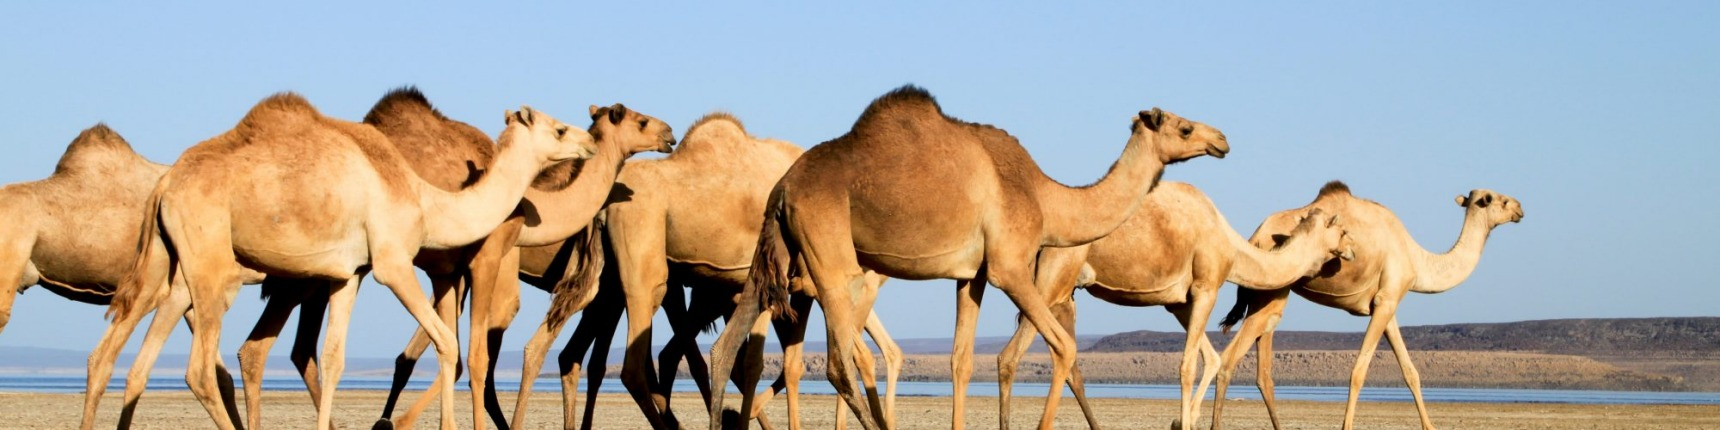 Camels march through the desert.